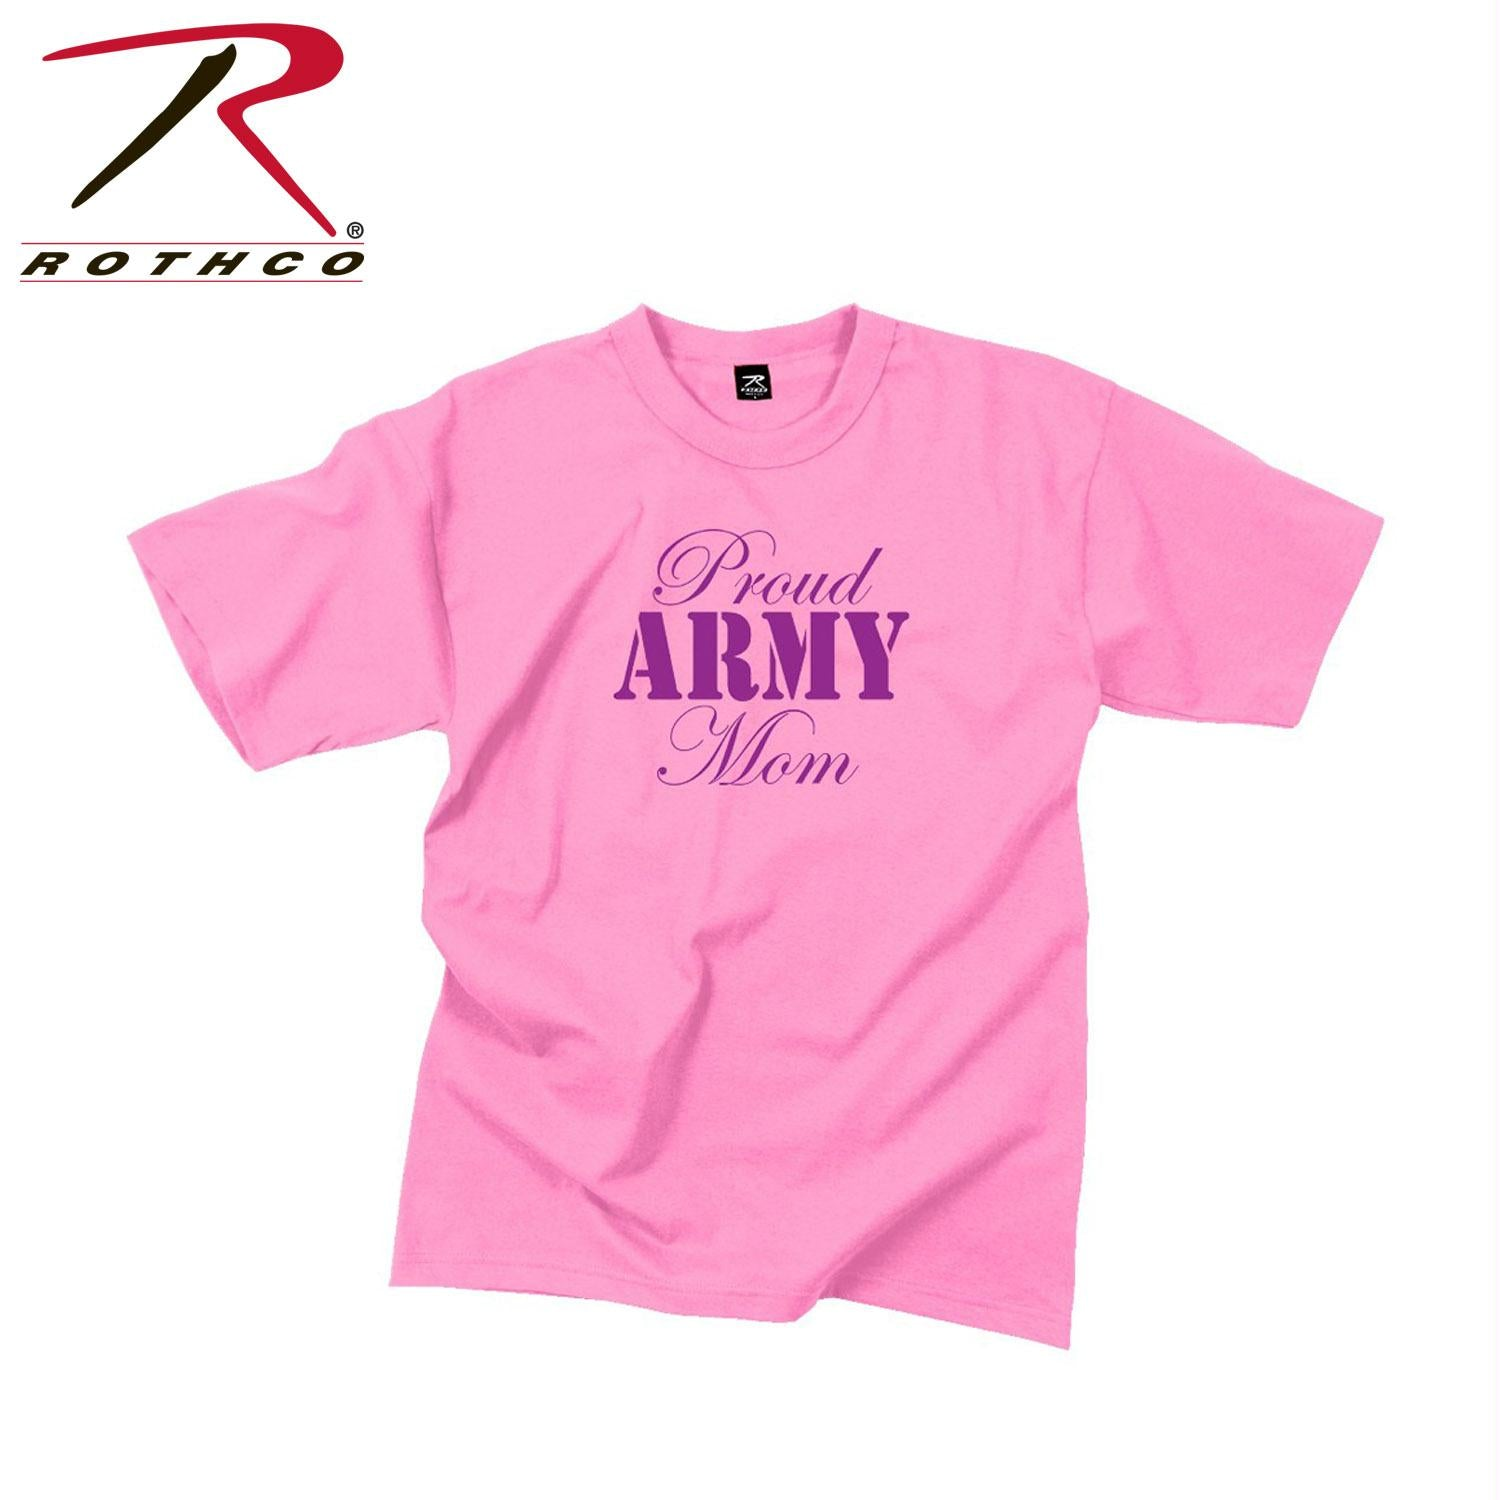 Rothco Proud Army Mom T-Shirt - M